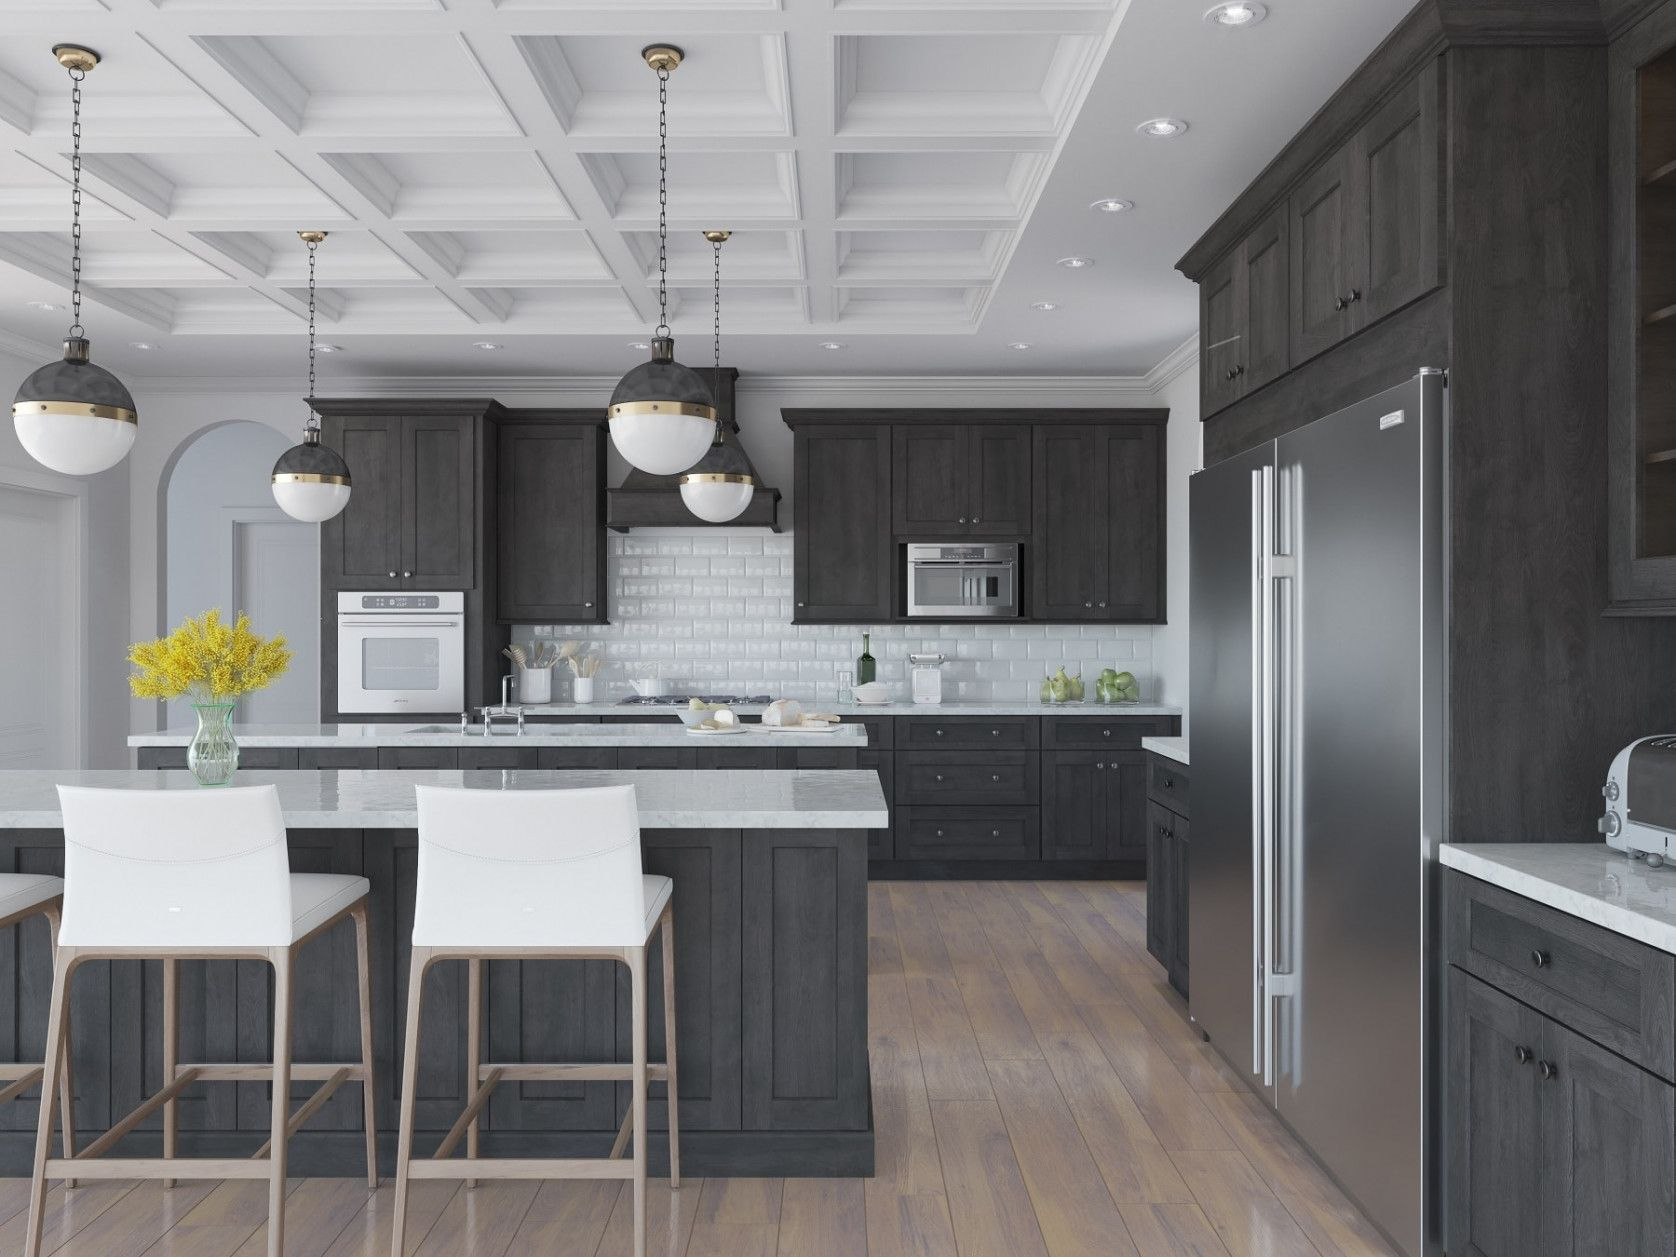 Best Places To Buy Kitchen Cabinets Pin By Rahayu12 On Interior Analogi Pinterest Kitchen